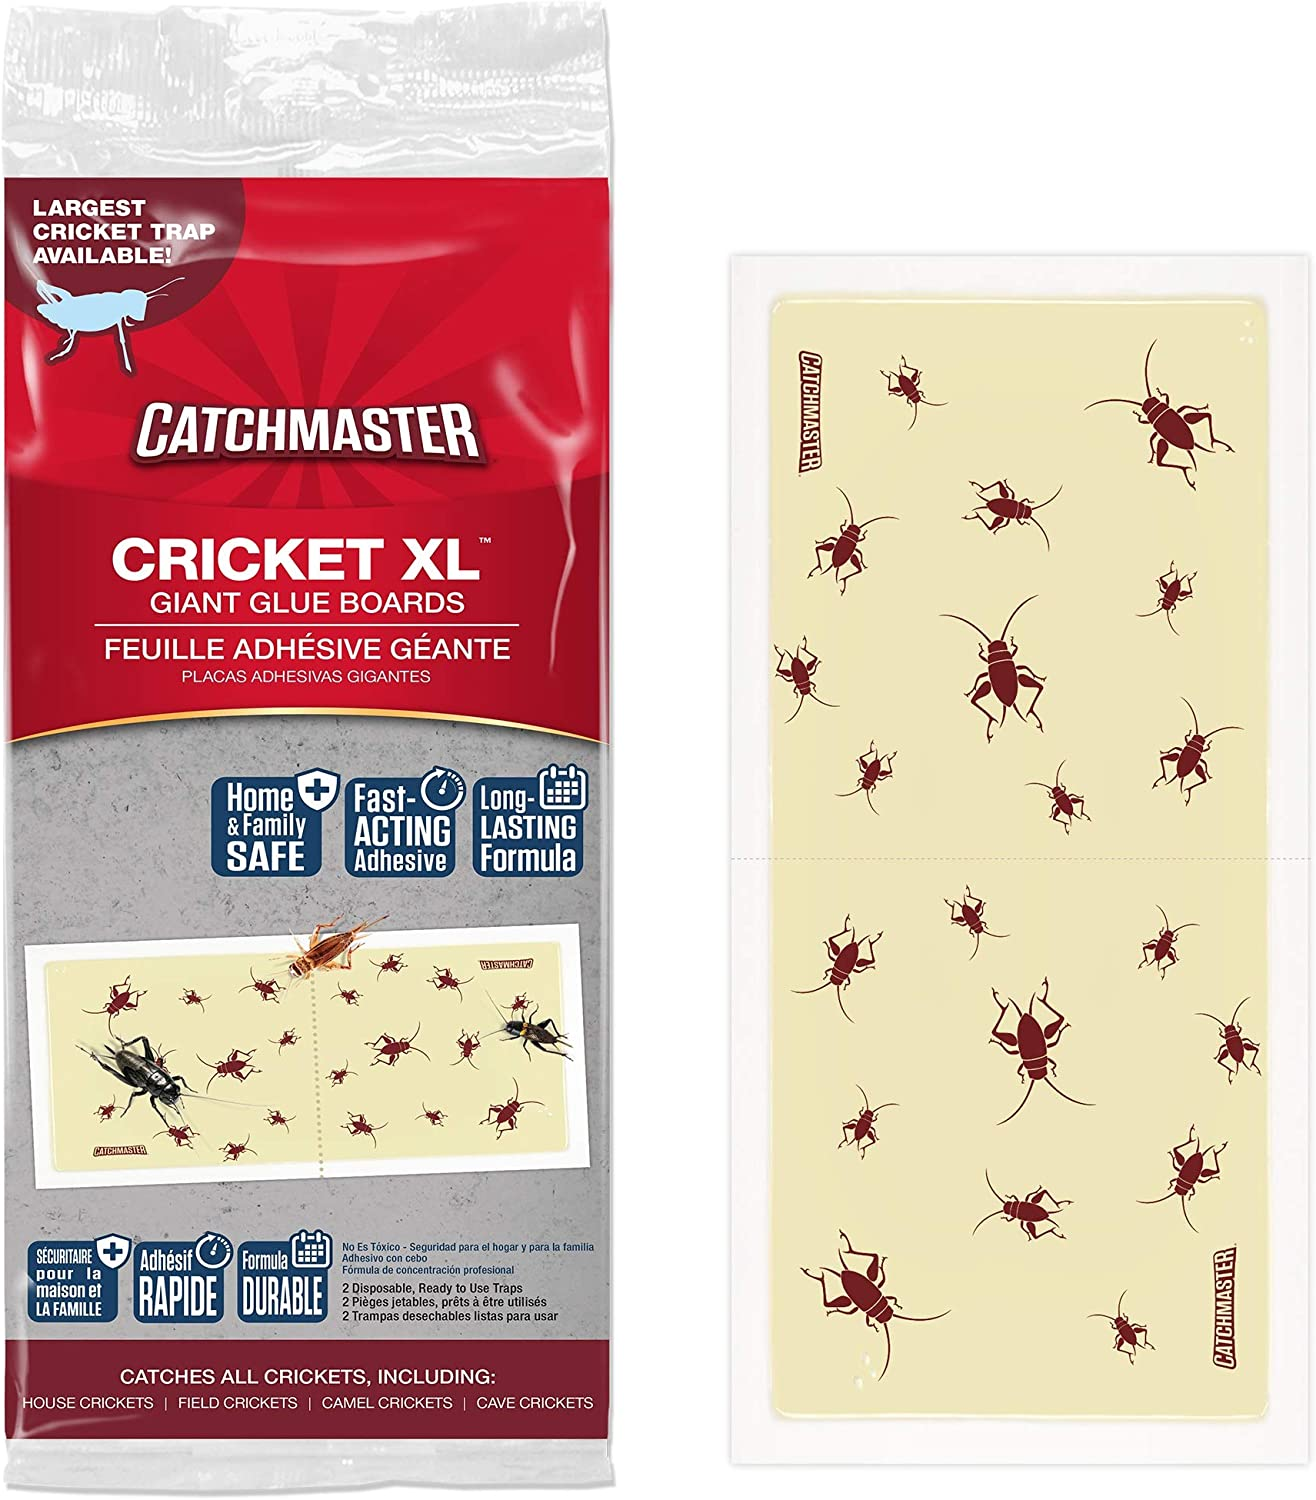 Catchmaster Cricket XL, Largest Cricket Trap Available - 6 Glue Traps